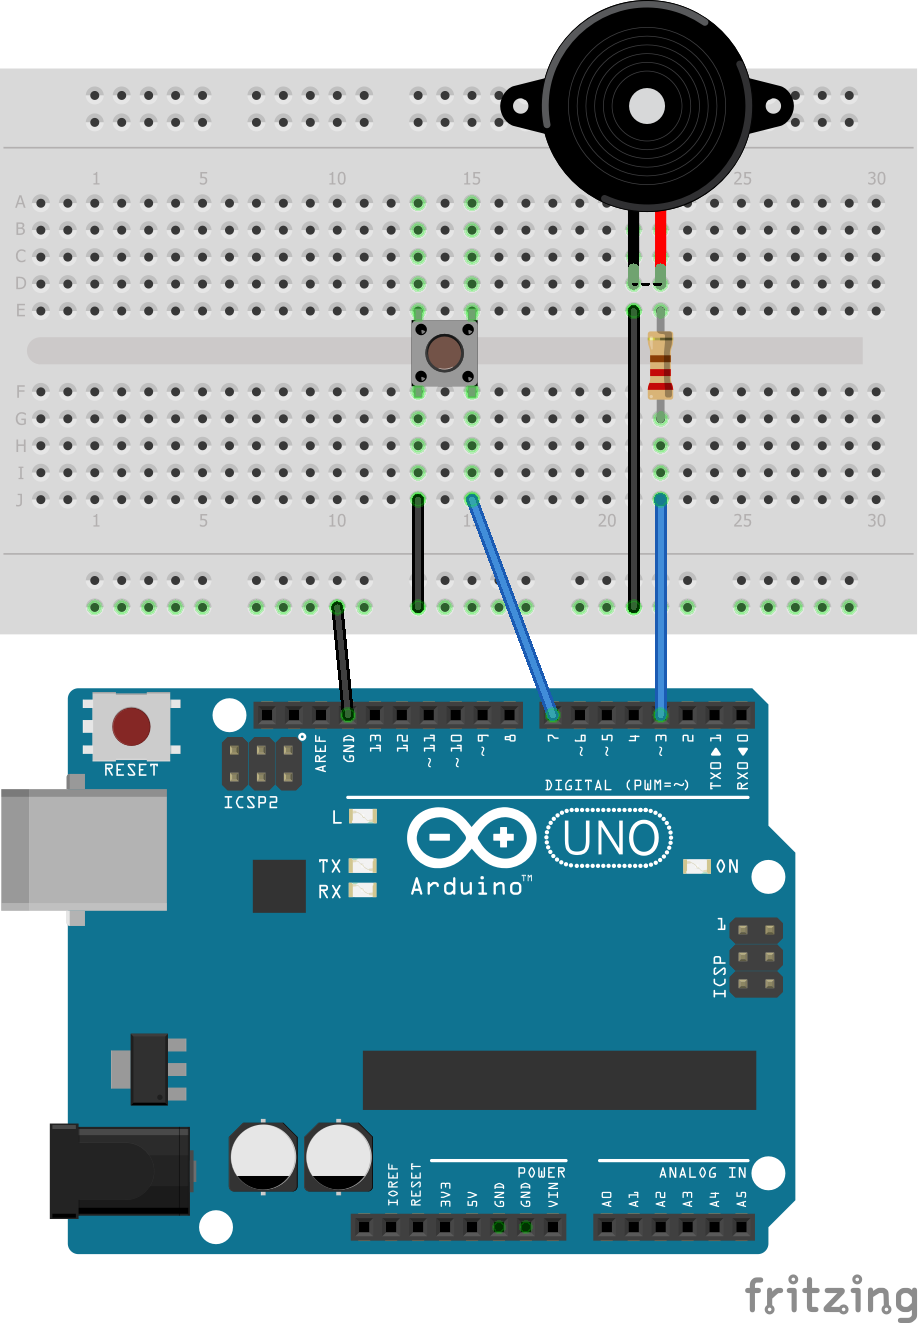 ../../_images/arduino-proto-06-buzzer-bb.png